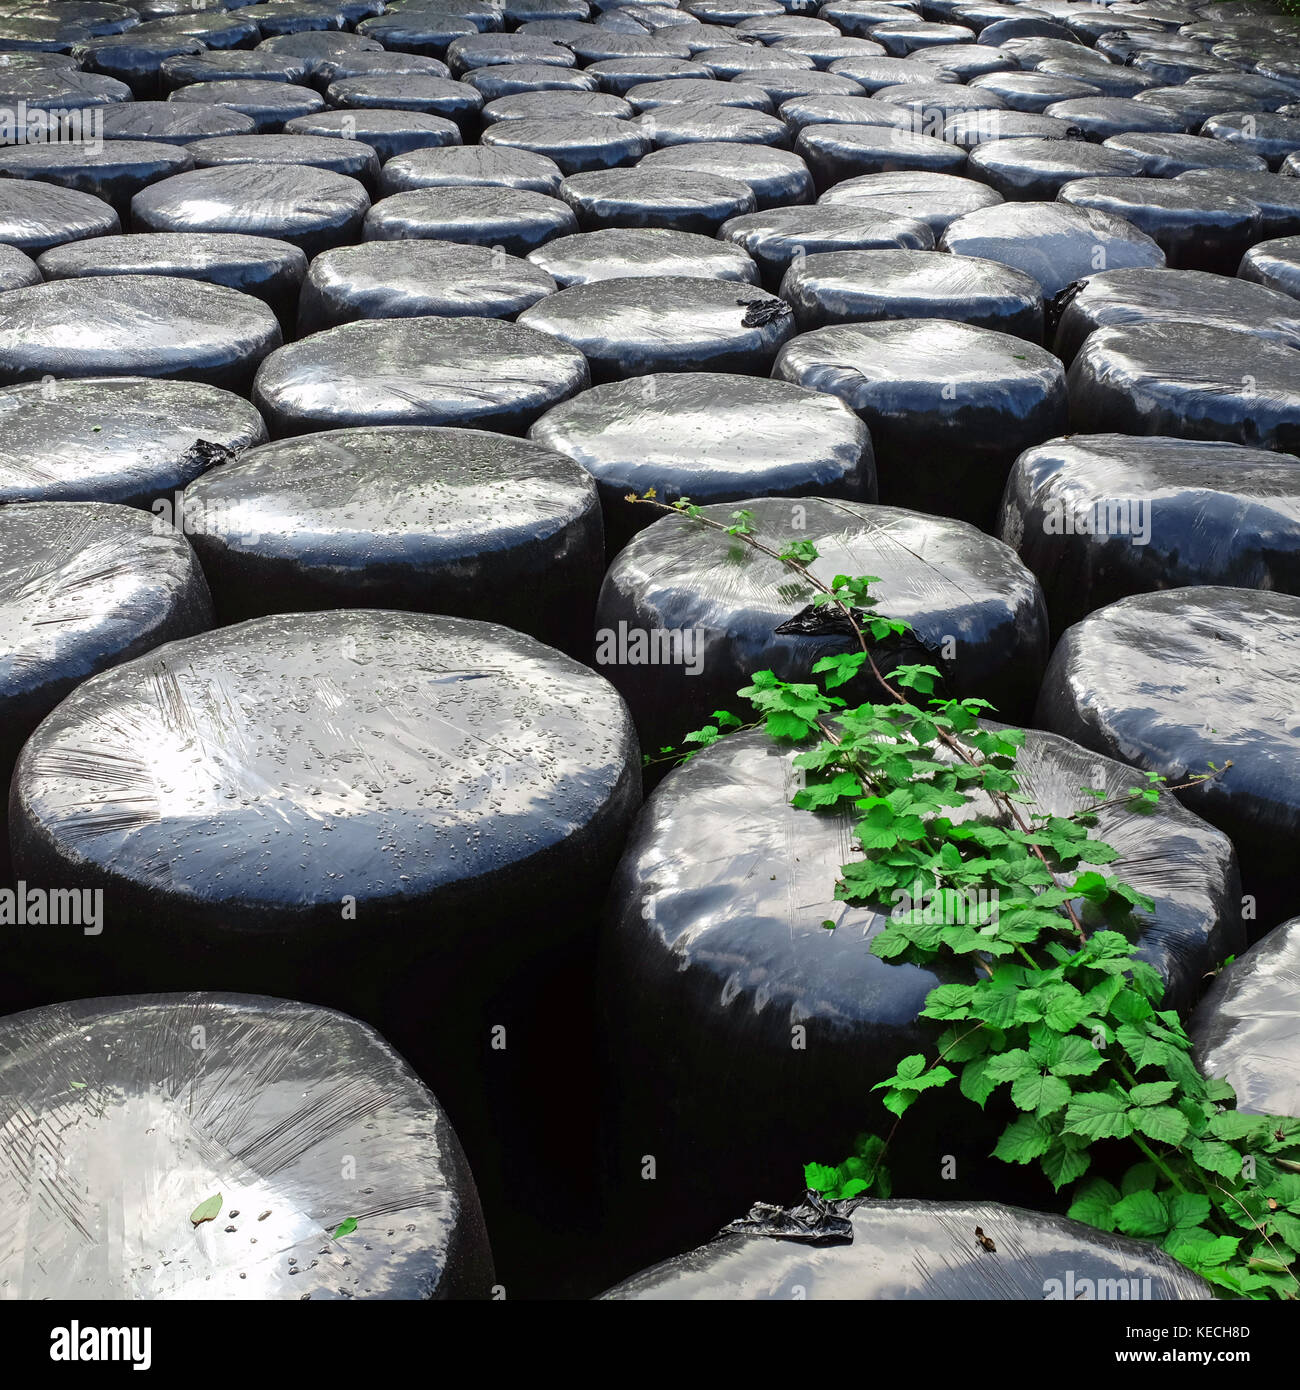 Plastic silage bales, Bentra Road, Whitehead, Northern Ireland. - Stock Image